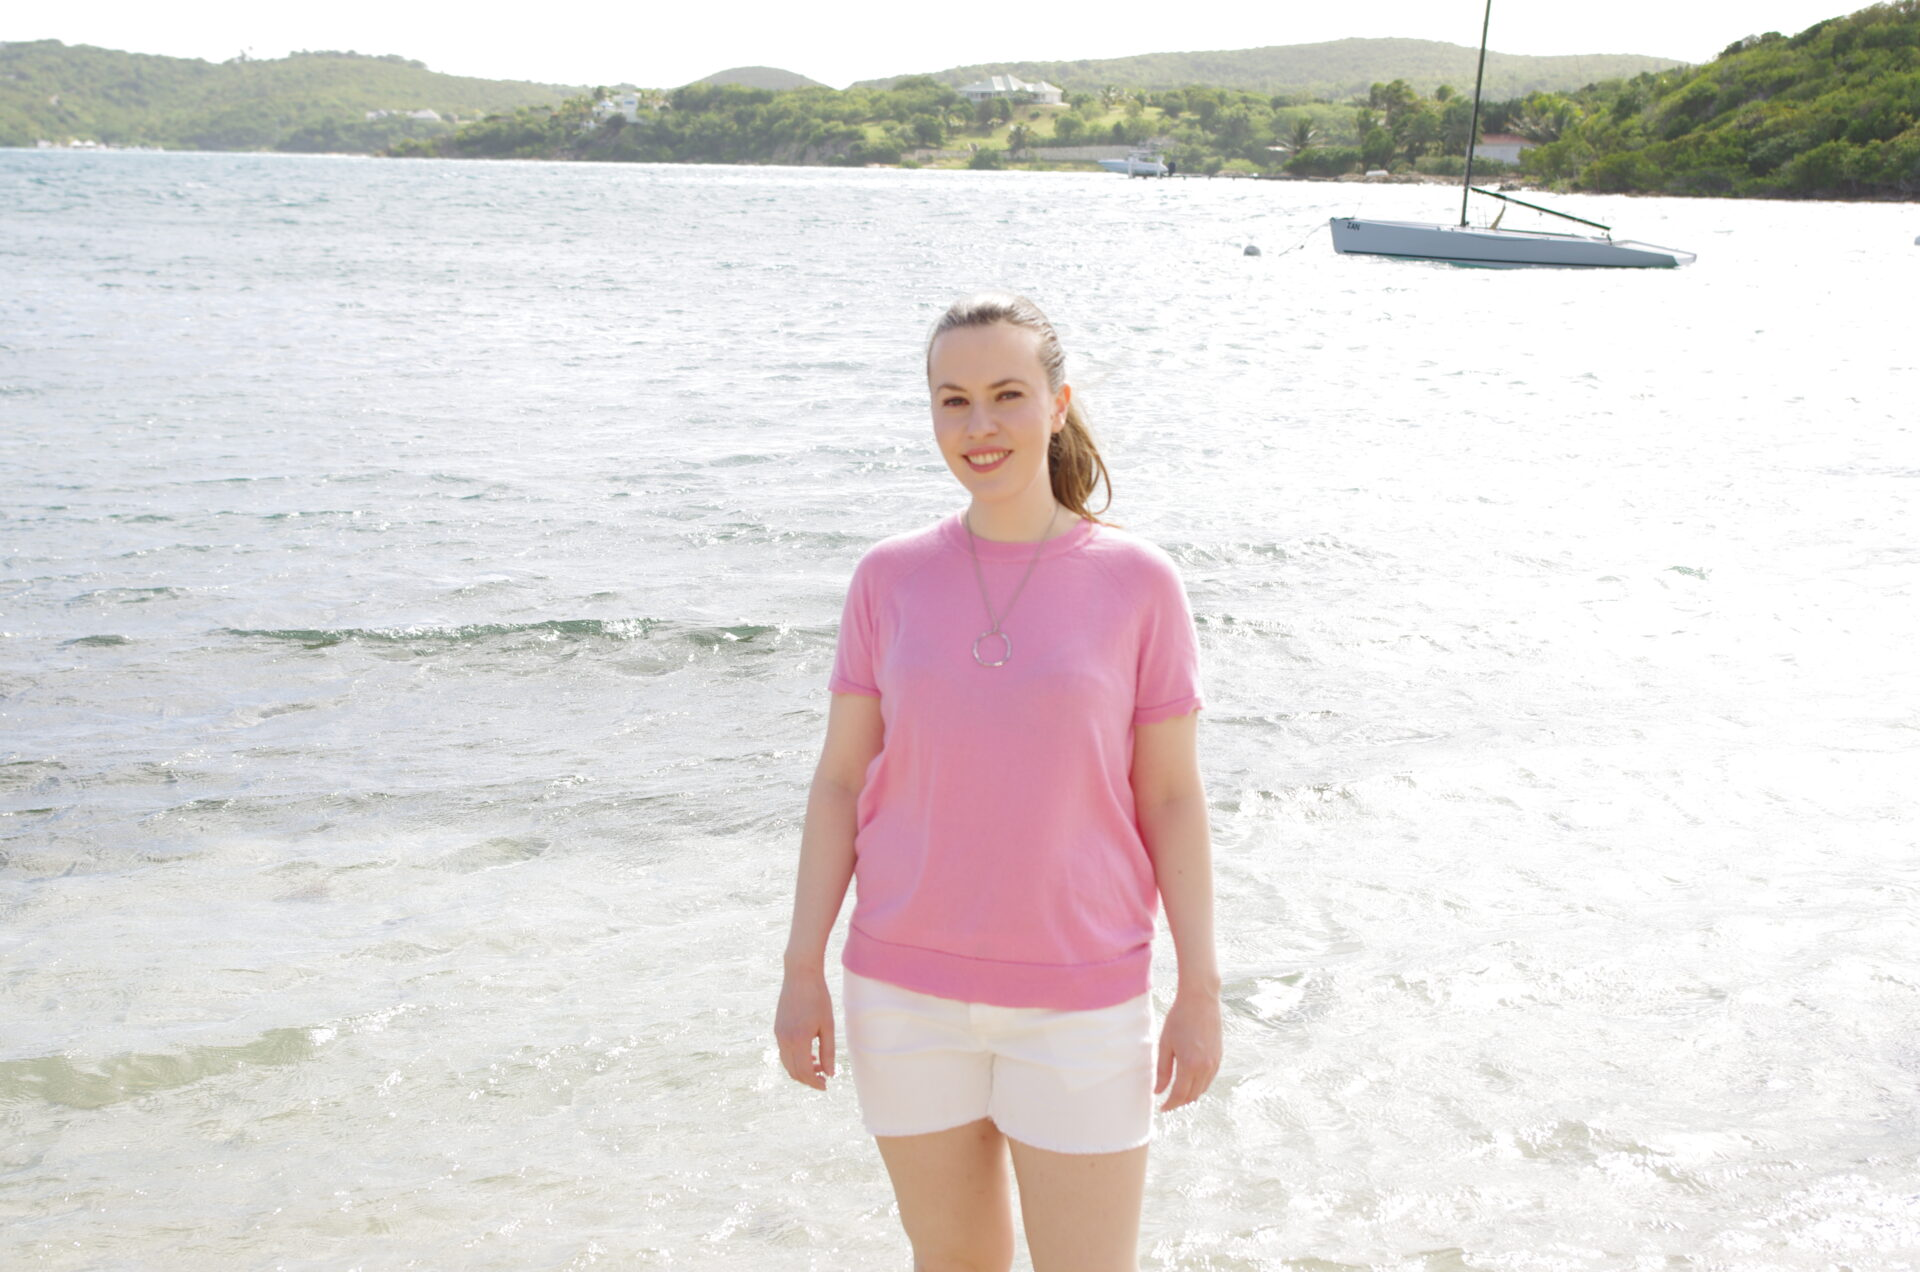 Joie Pink Sweater Nonsuch Bay Antigua